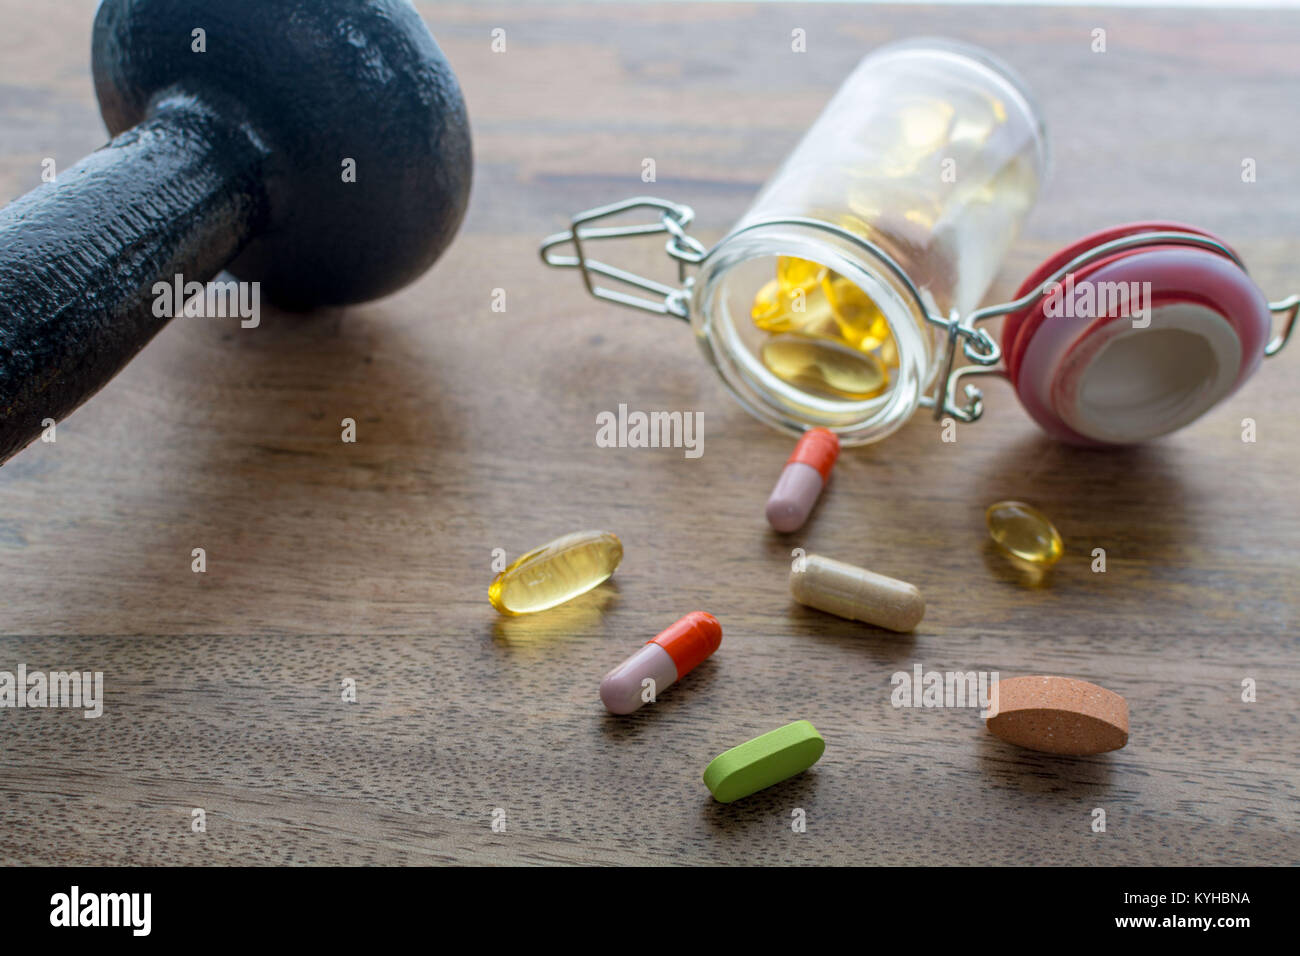 Closeup on dumbbell and dietary supplements on wooden table: fitness and weight loss concept. - Stock Image